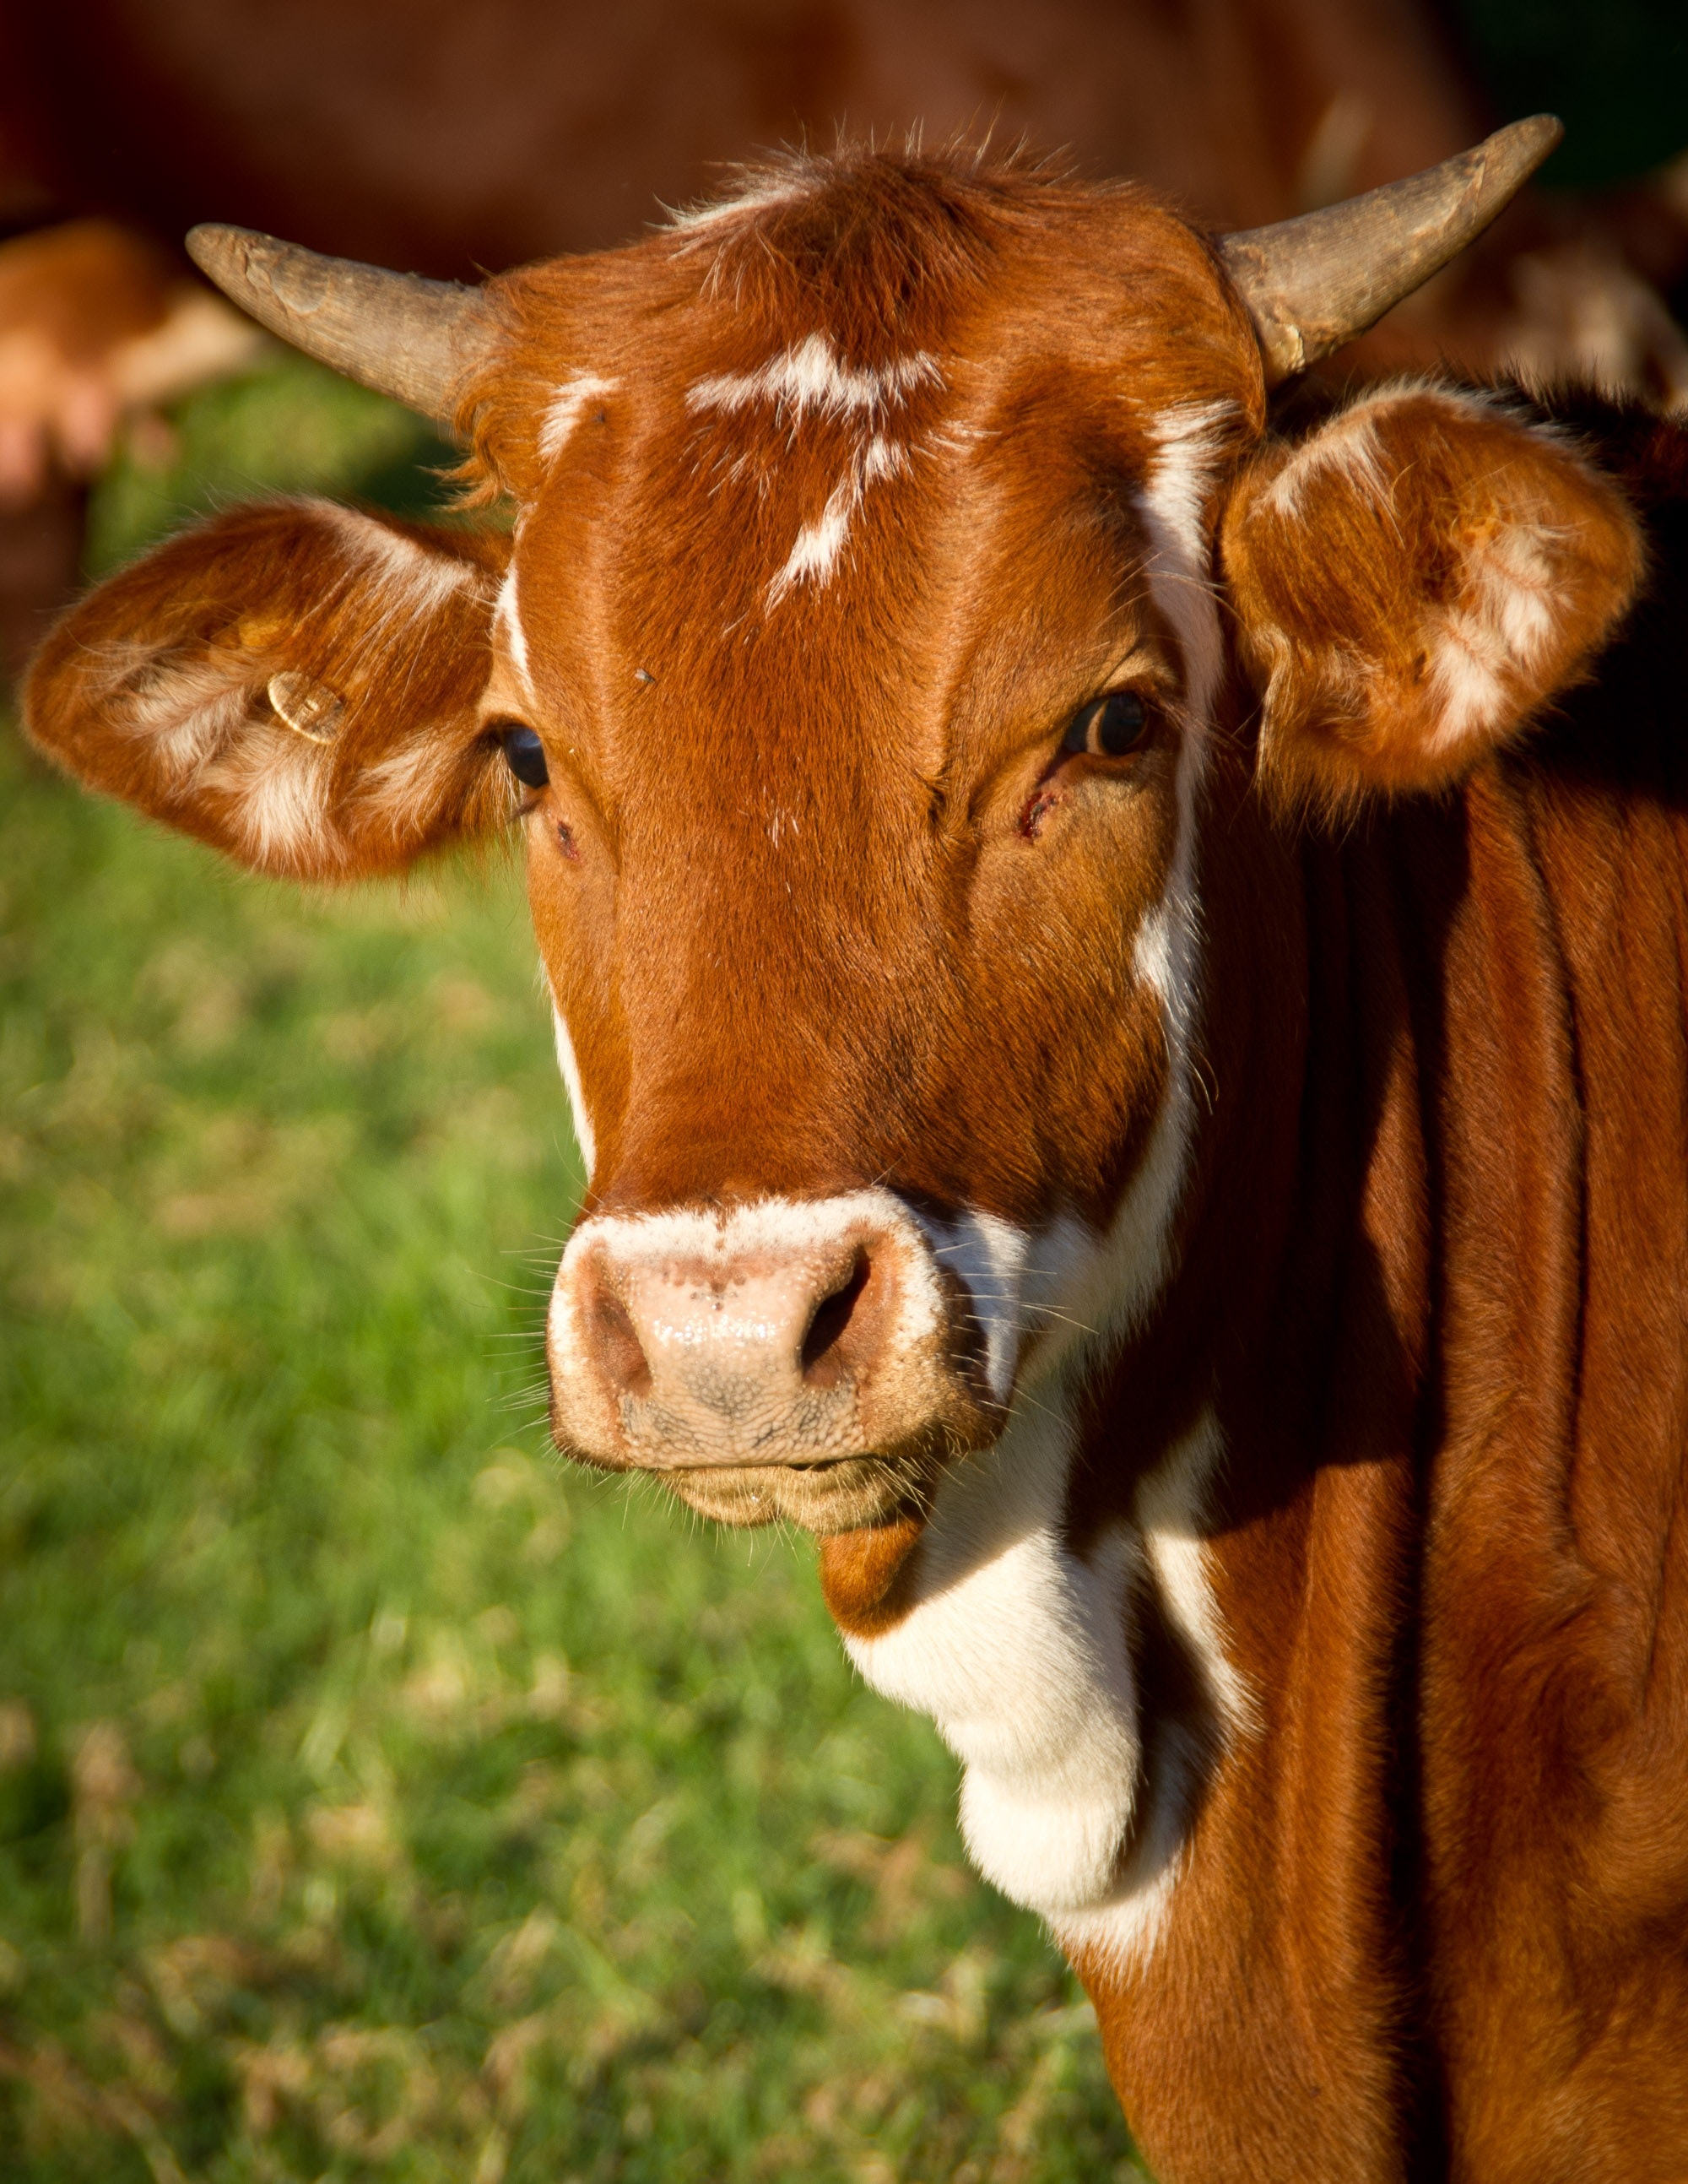 A beautiful beef-brown-bull, because Dina loves cows.